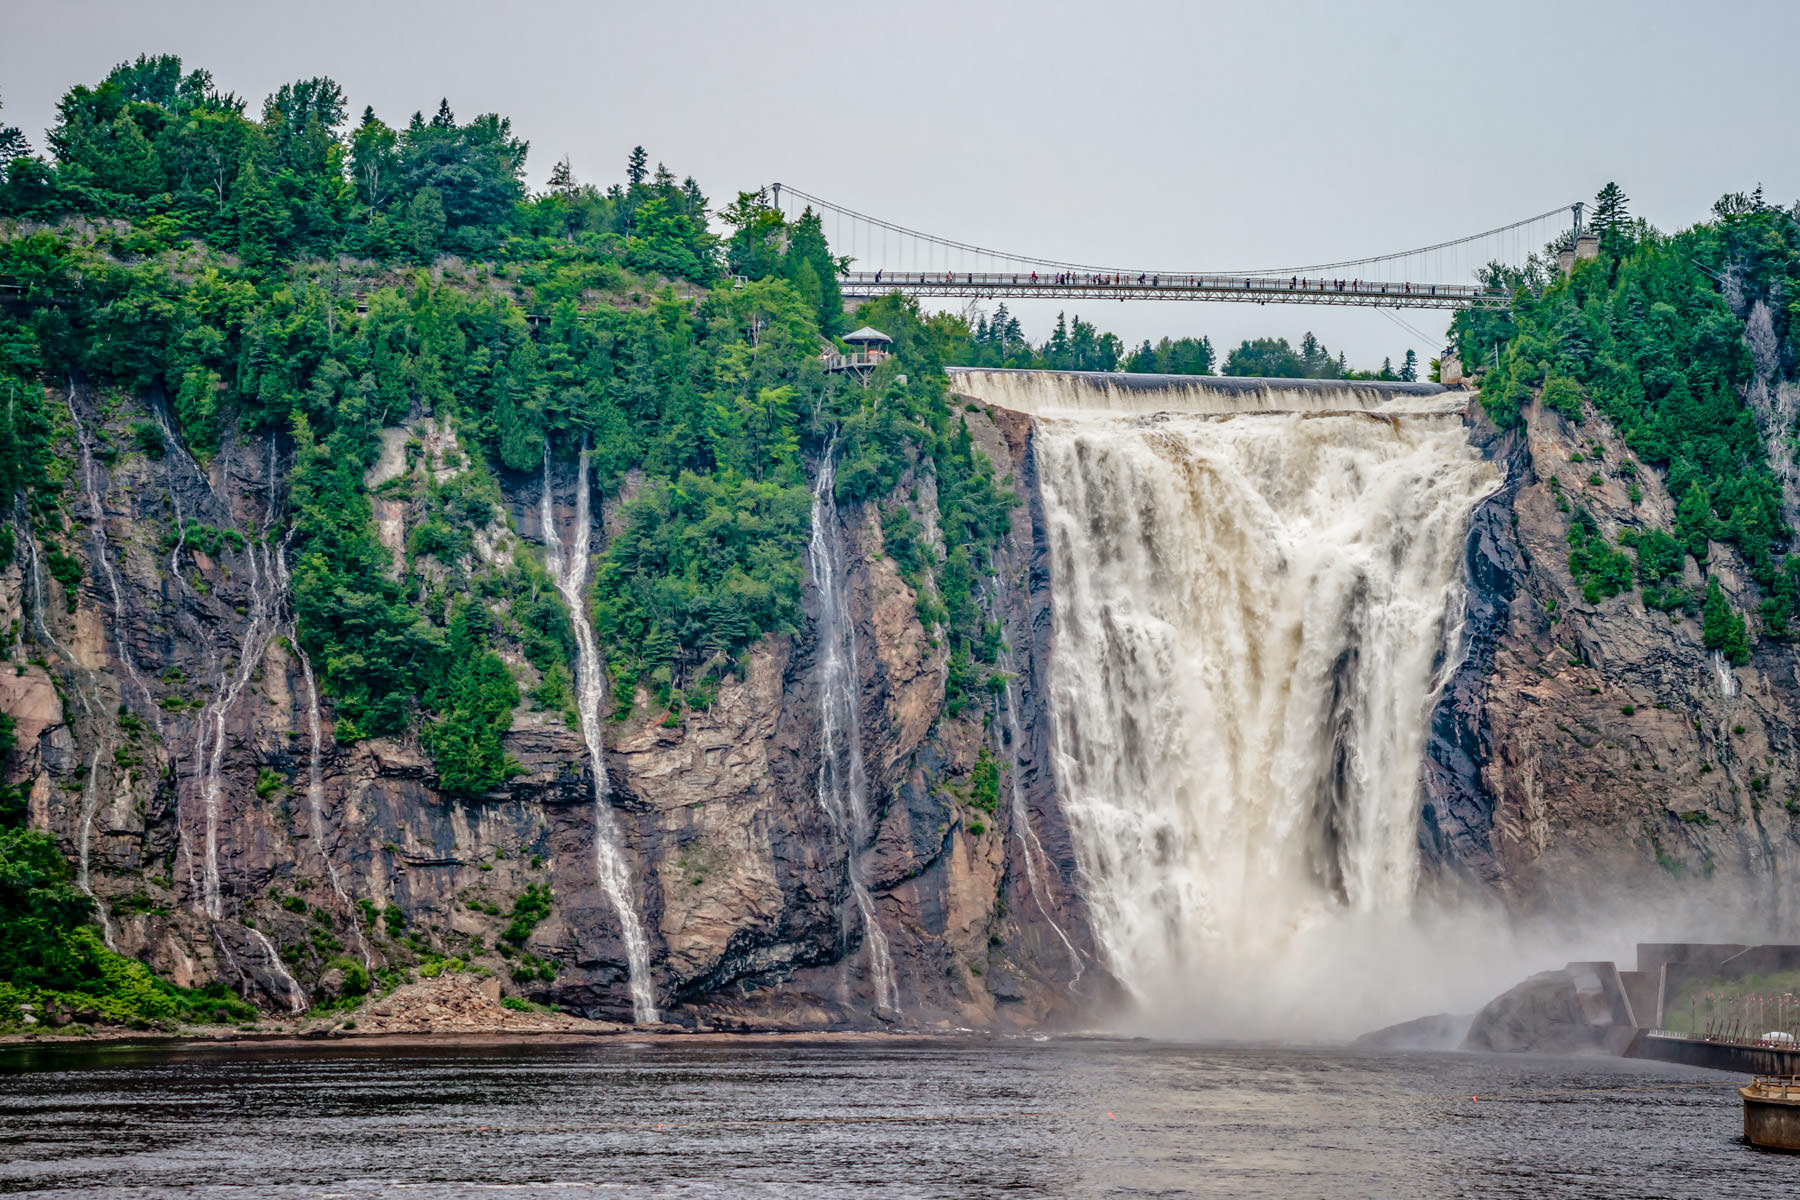 Muddy water from the Montmorency River tumbles over Montmorency Falls just outside ofQuébec City, Canada.